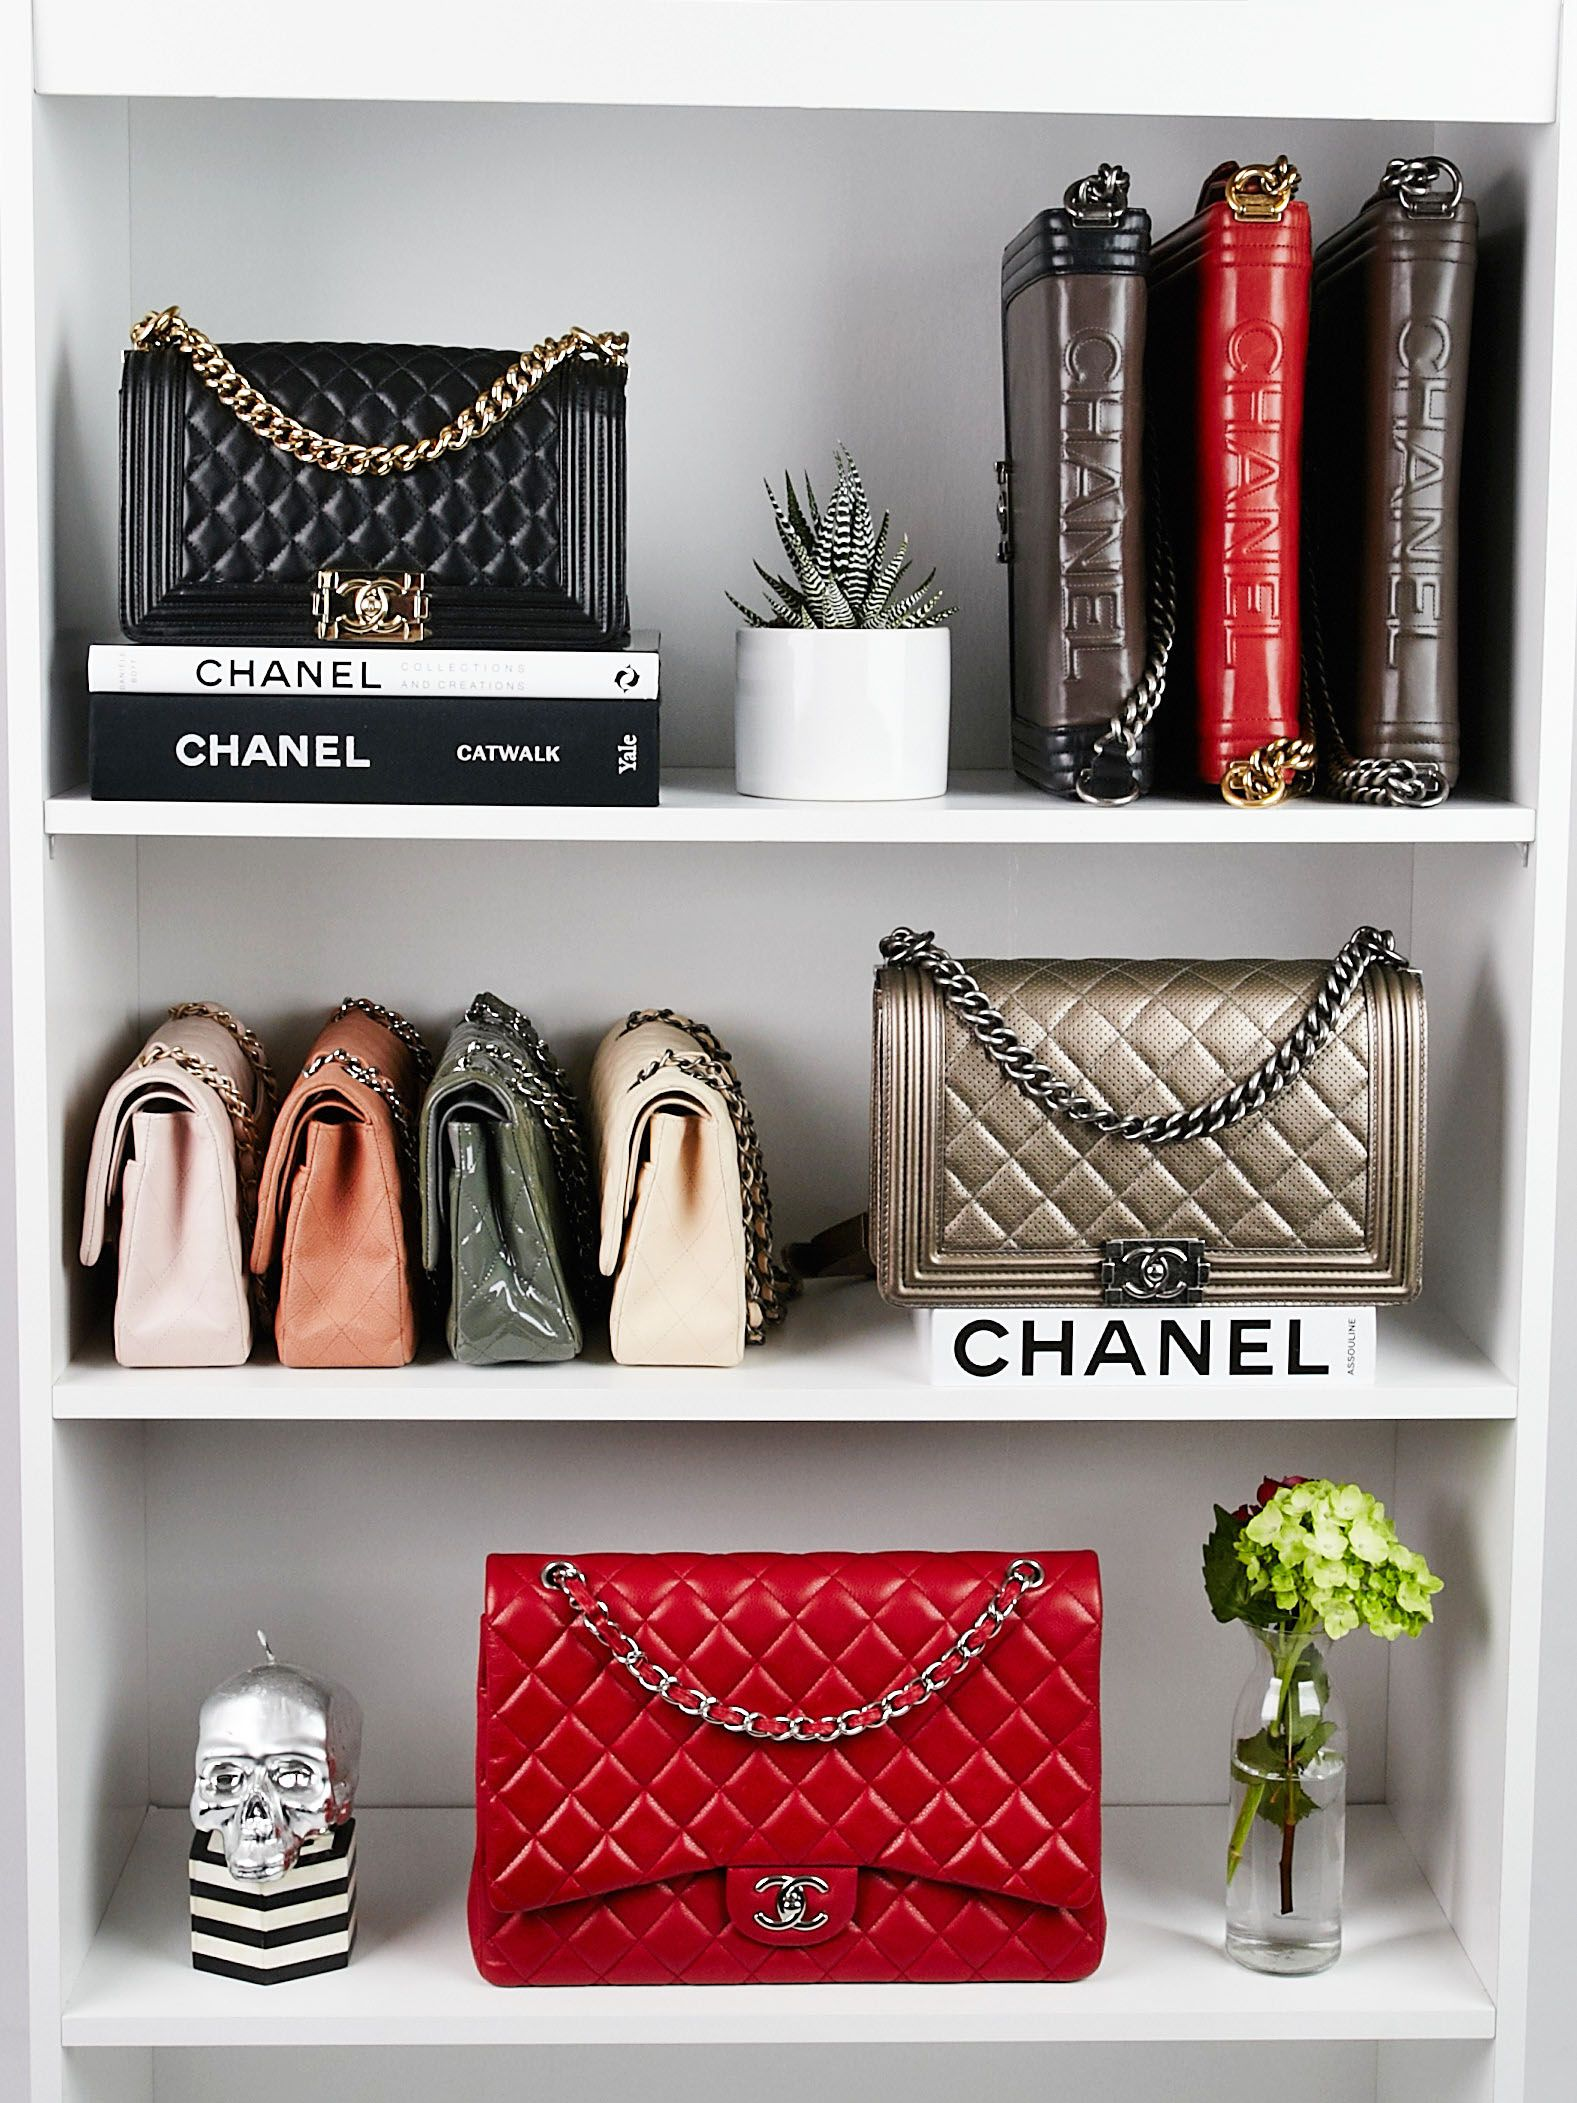 527792cfd34d Chanel shelfie! #Chanel #Chanelbag #chanelflapbag #Chanelboybag #fashion  #bags #closets #shelfie #style #luxury